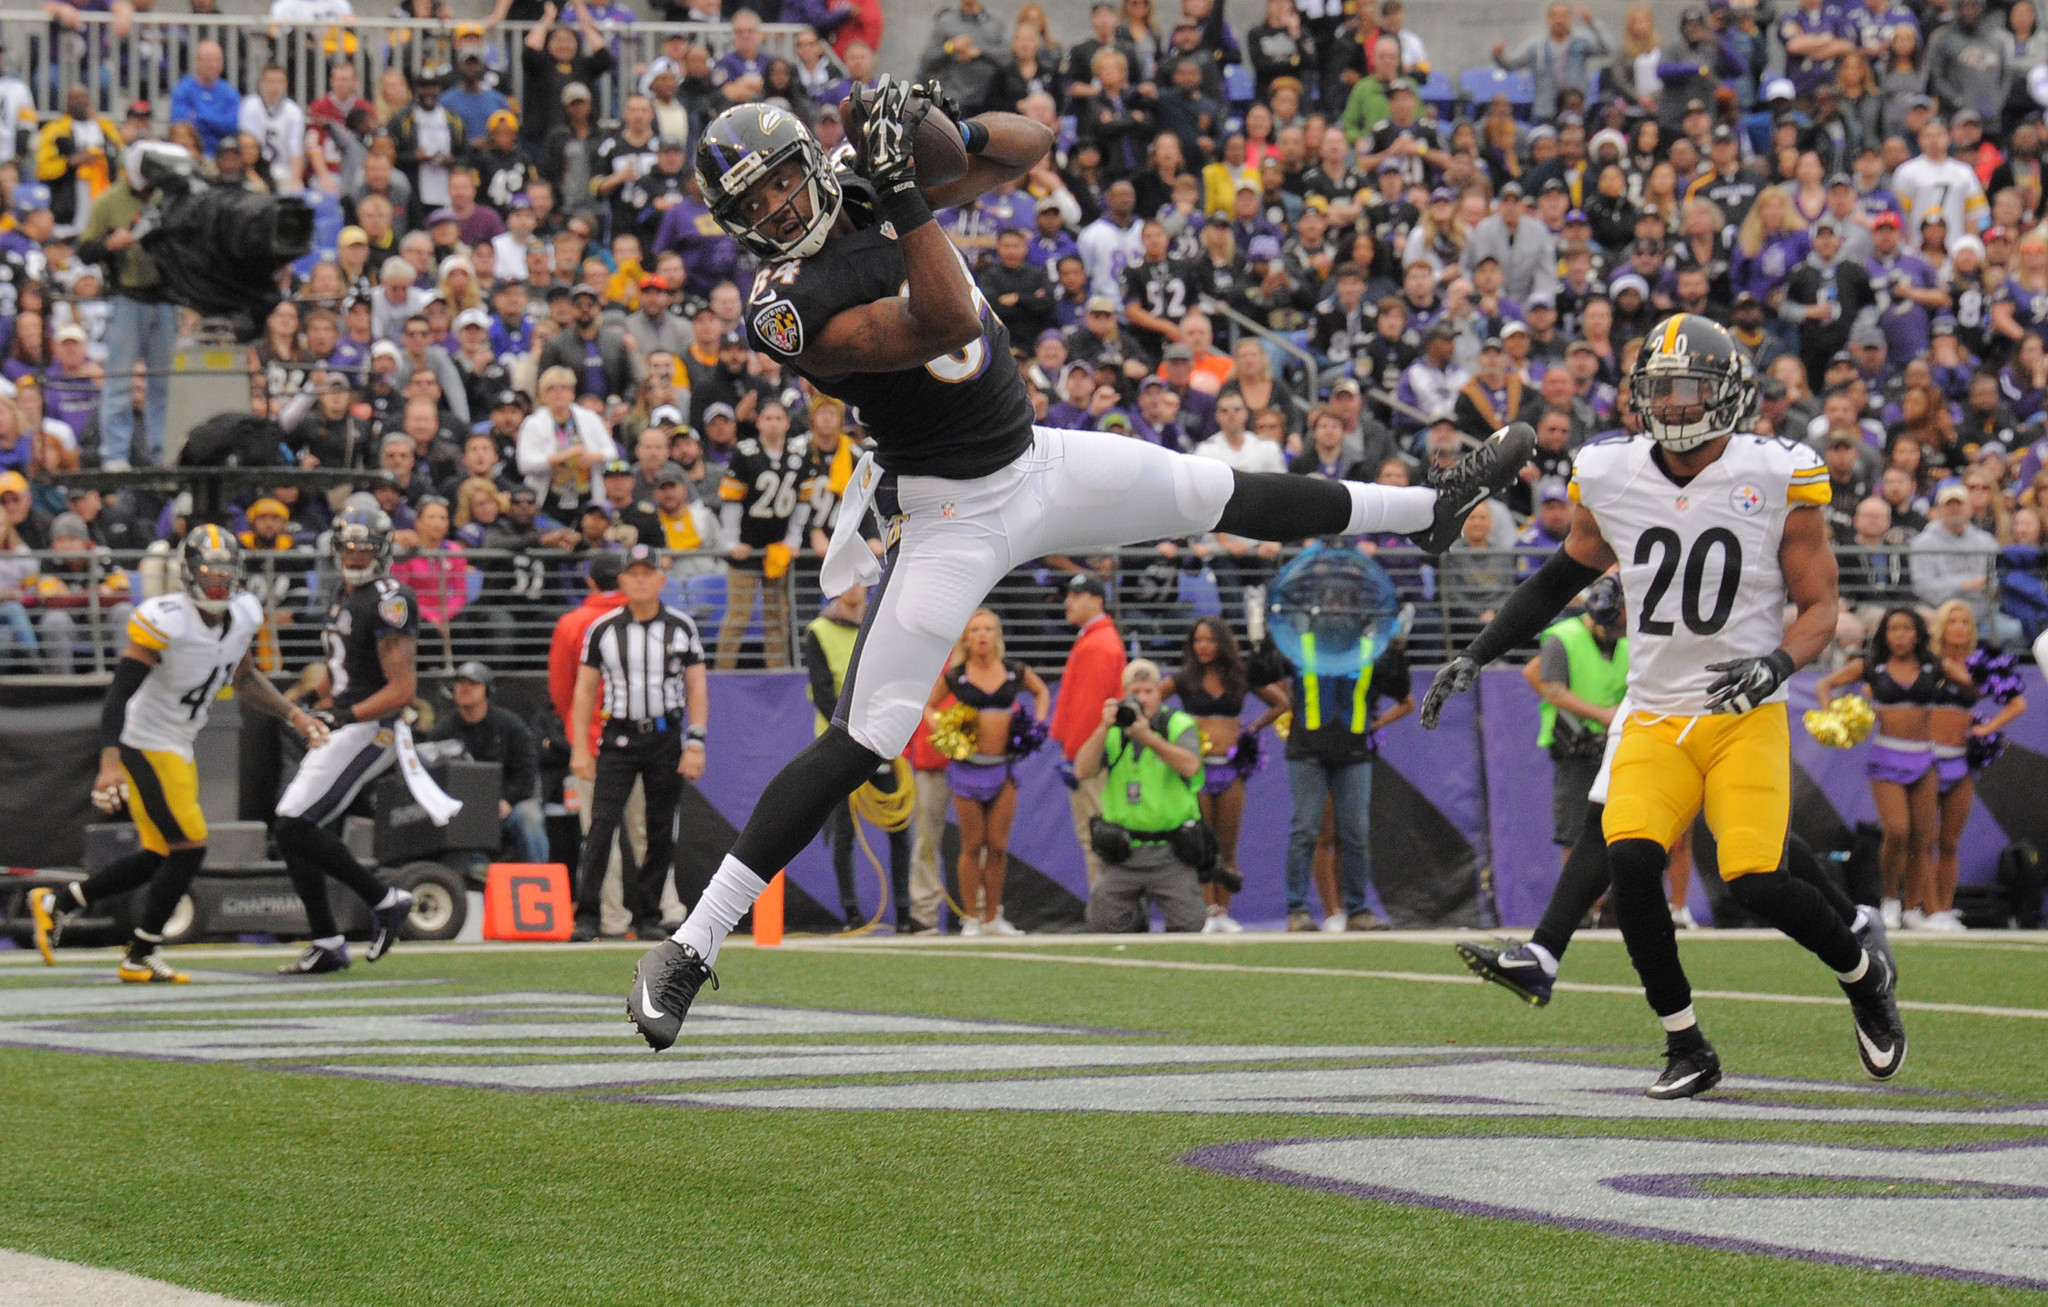 Bal-ravens-wide-receiver-chris-matthews-signs-exclusive-rights-tender-20160407